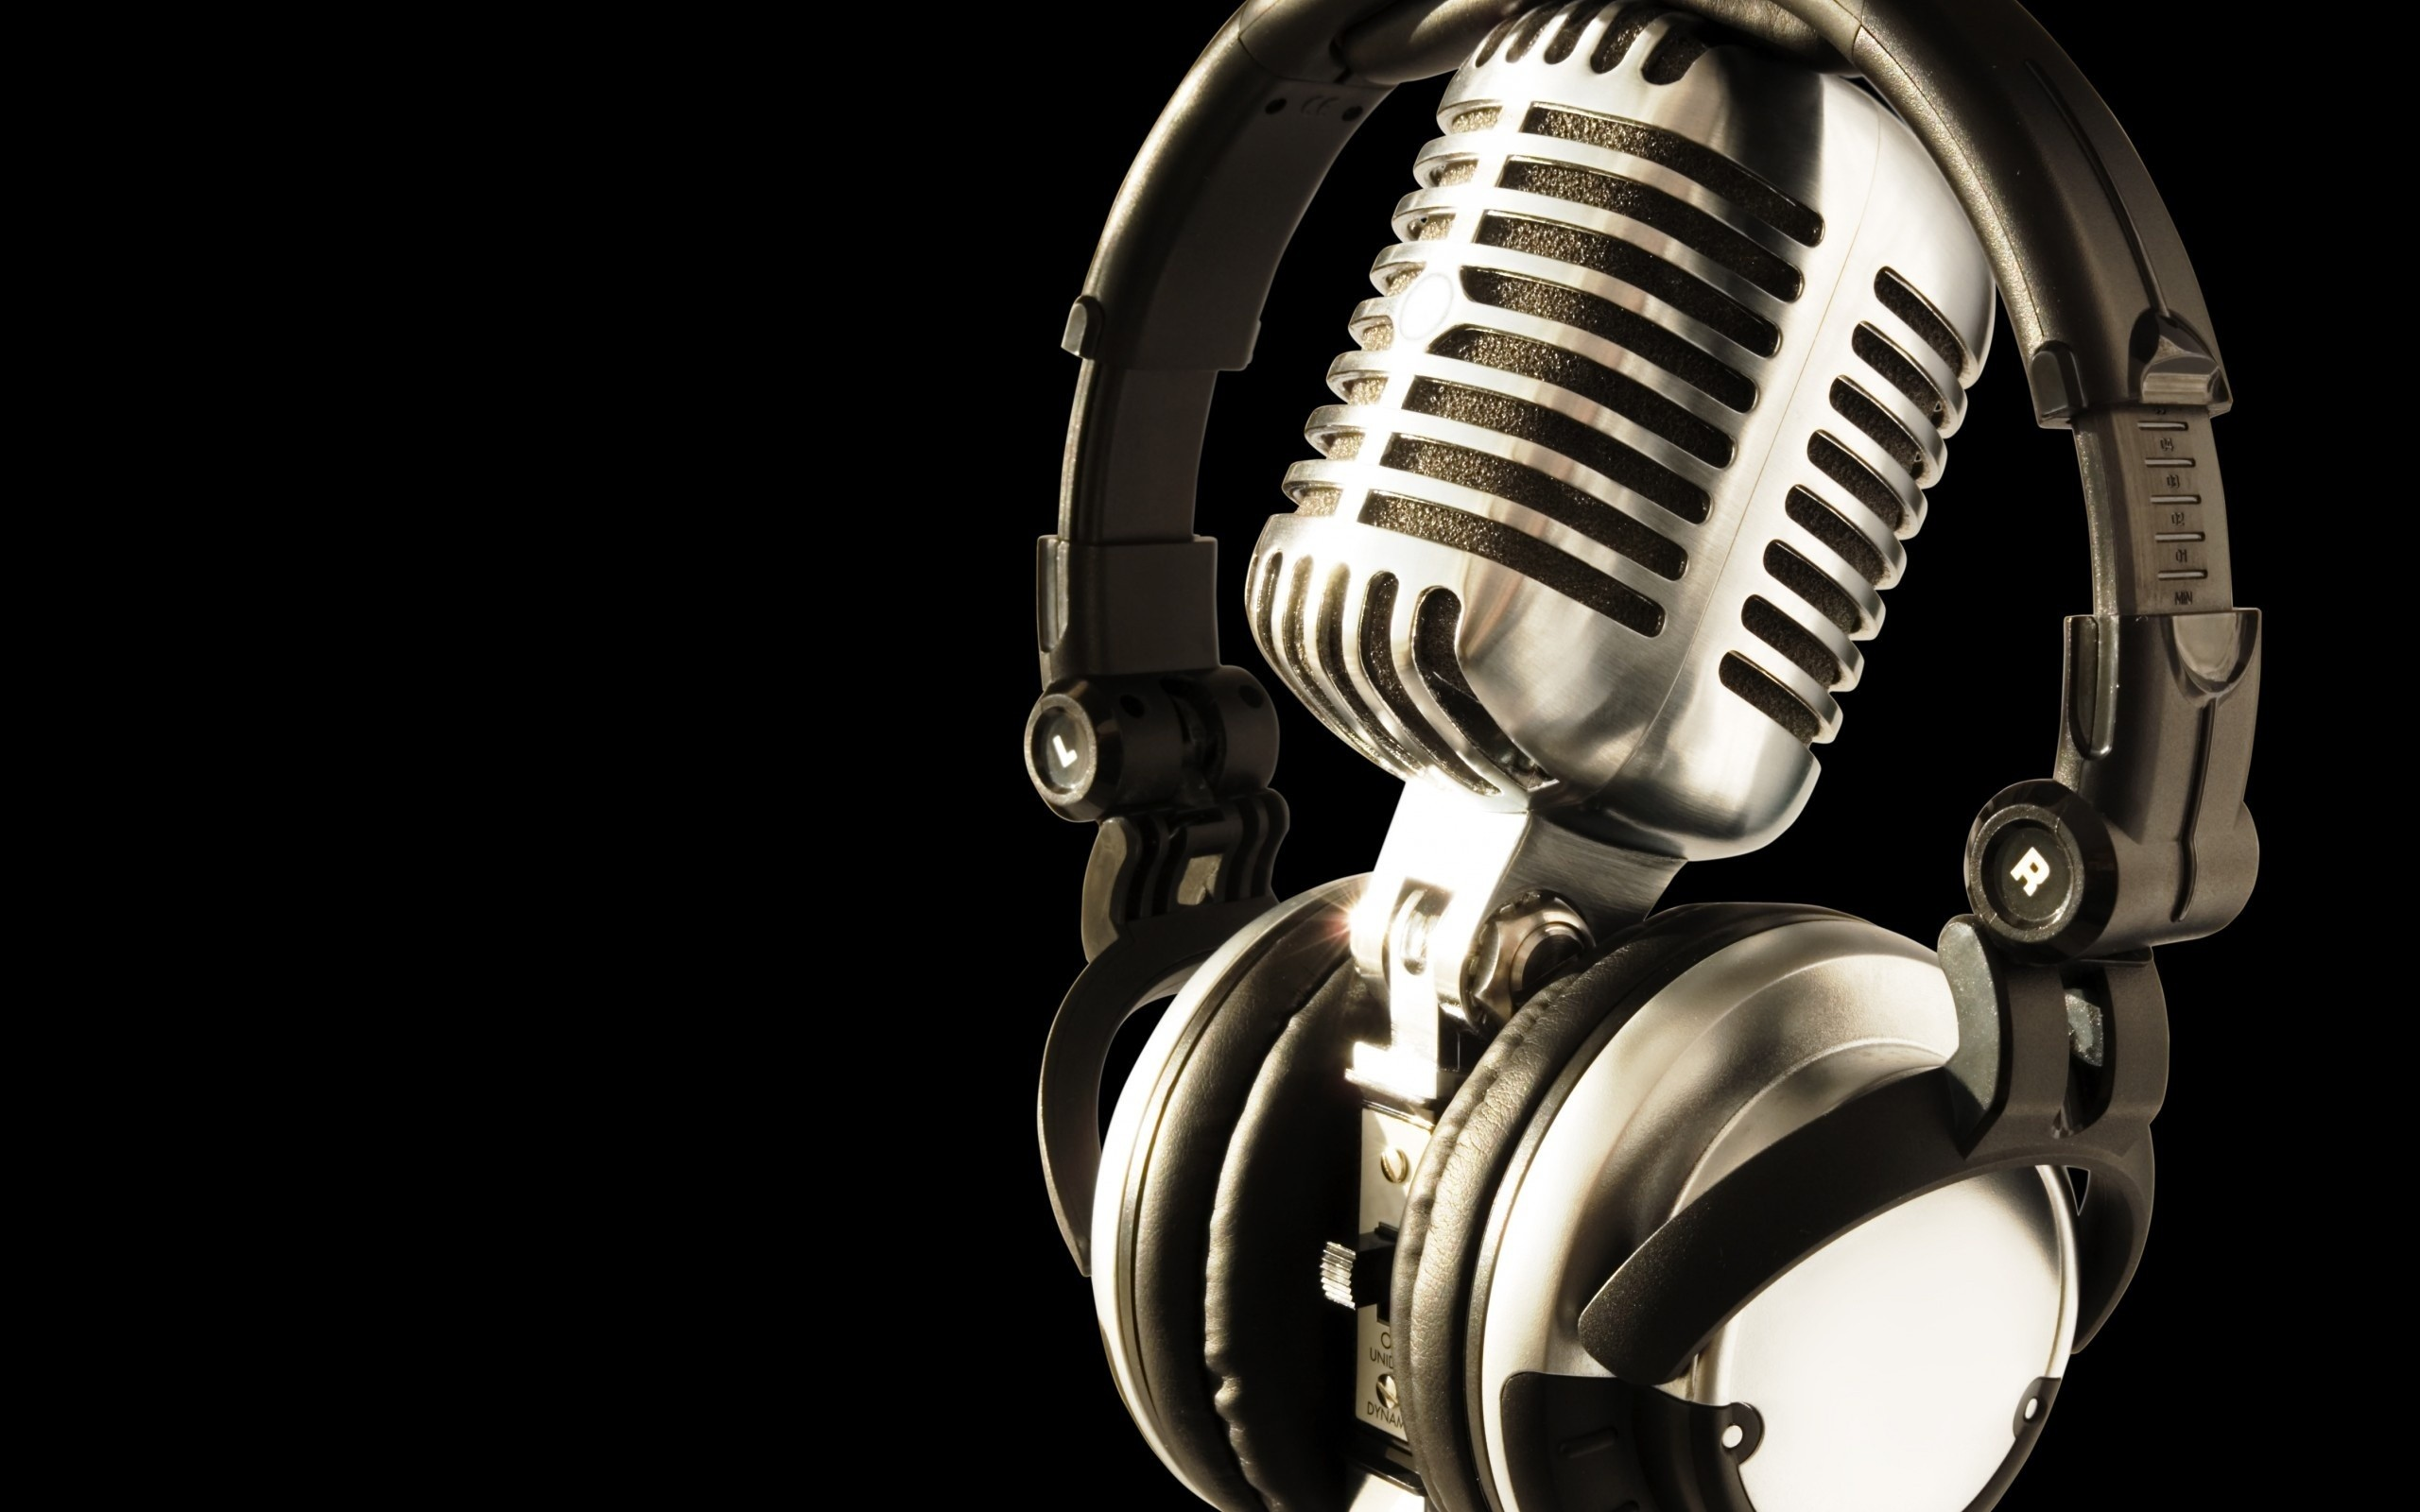 Pin Music Studio Wallpapers Abstract Hd On Pinterest Picture 2560x1600